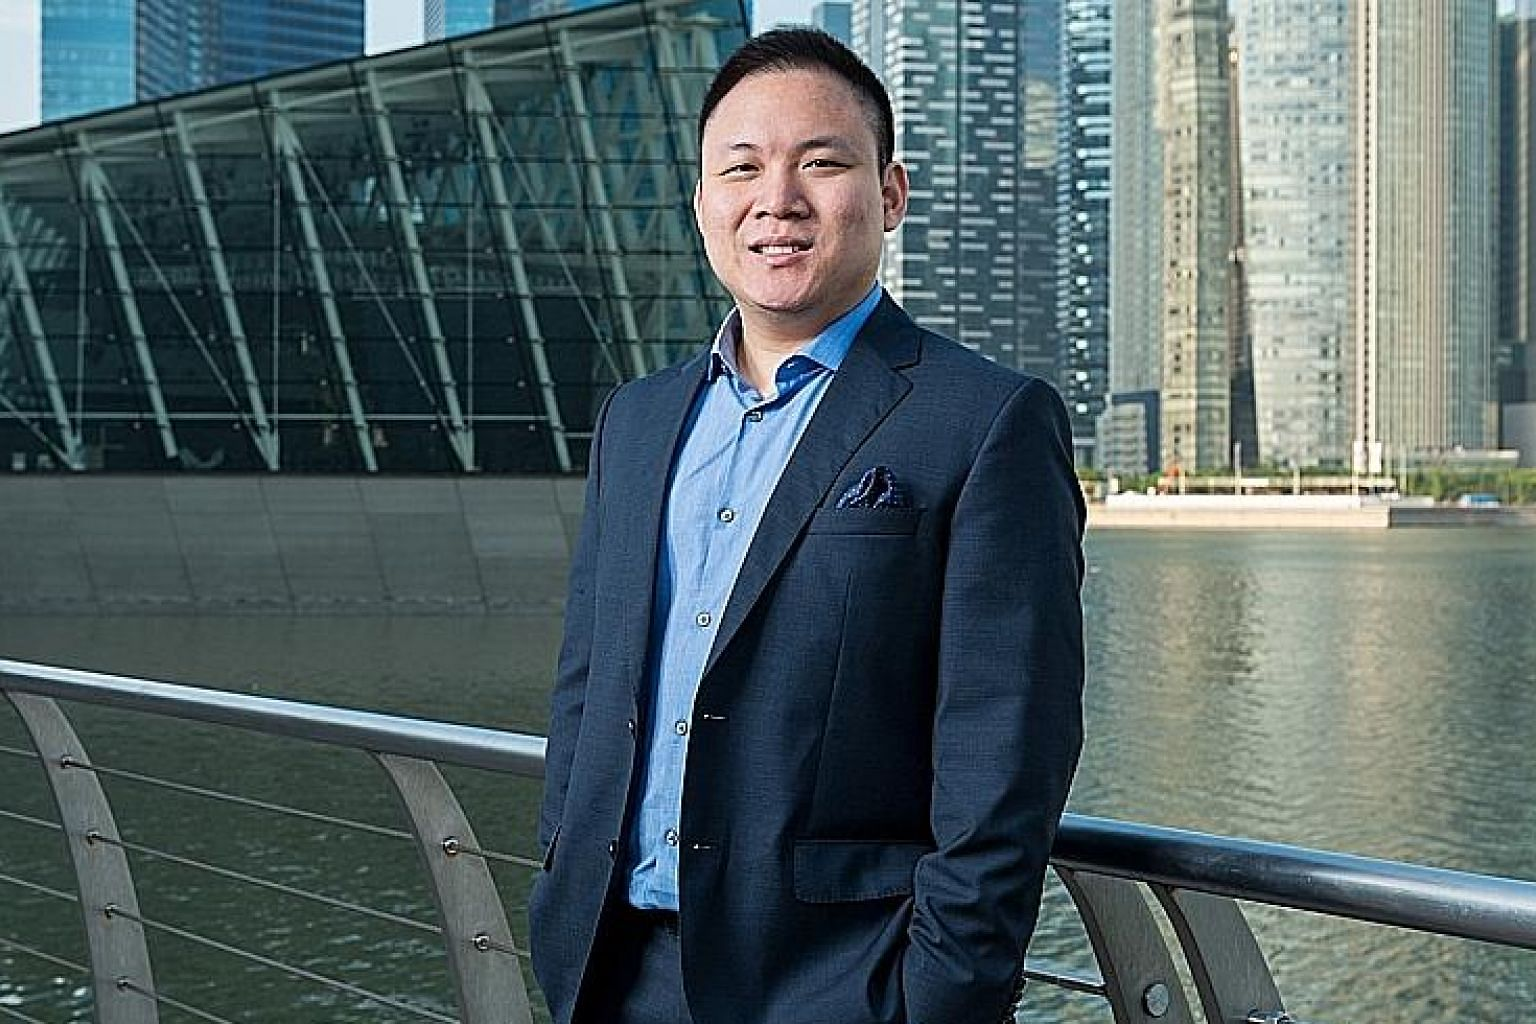 Mr Cheo Ming Shen alleges he was forced out as chief executive officer of Nuffnang's parent company Netccentric.